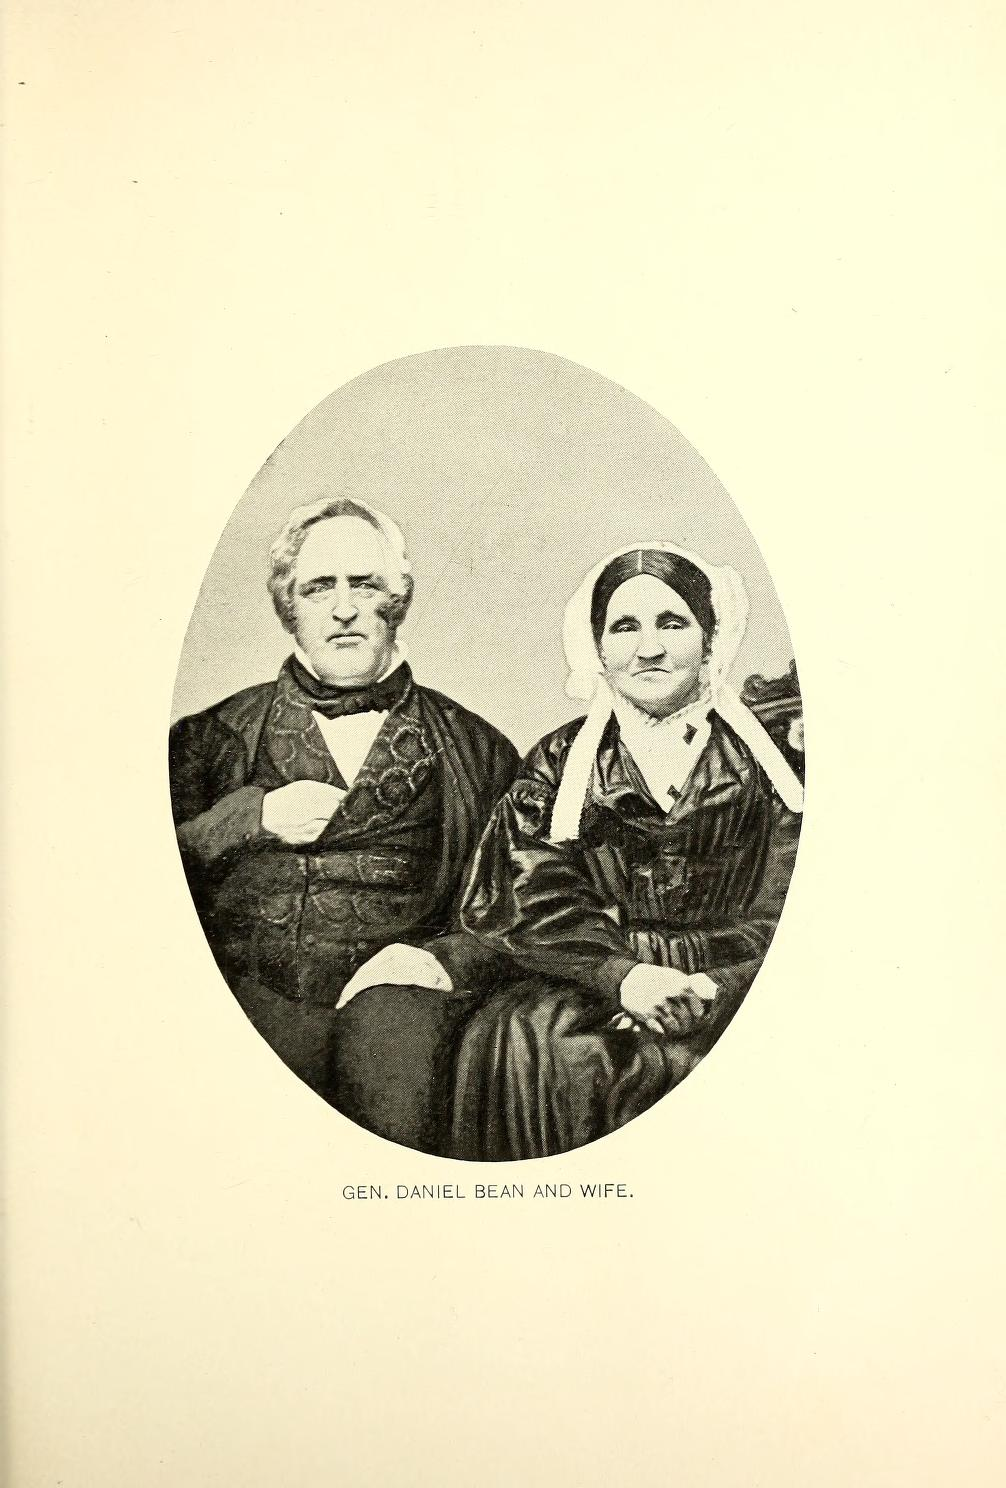 Gen. Daniel Bean and Wife